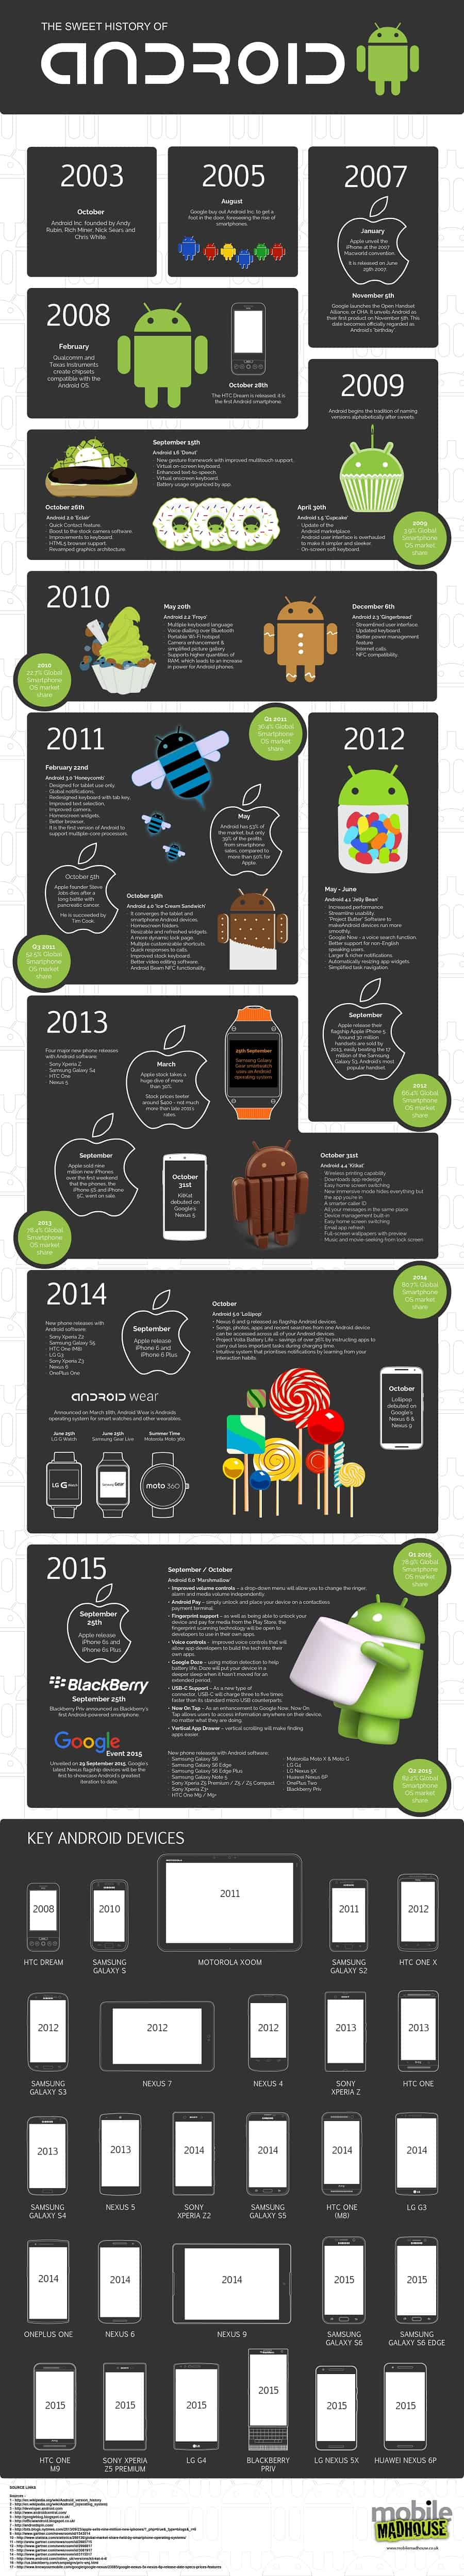 Evolution of Android3